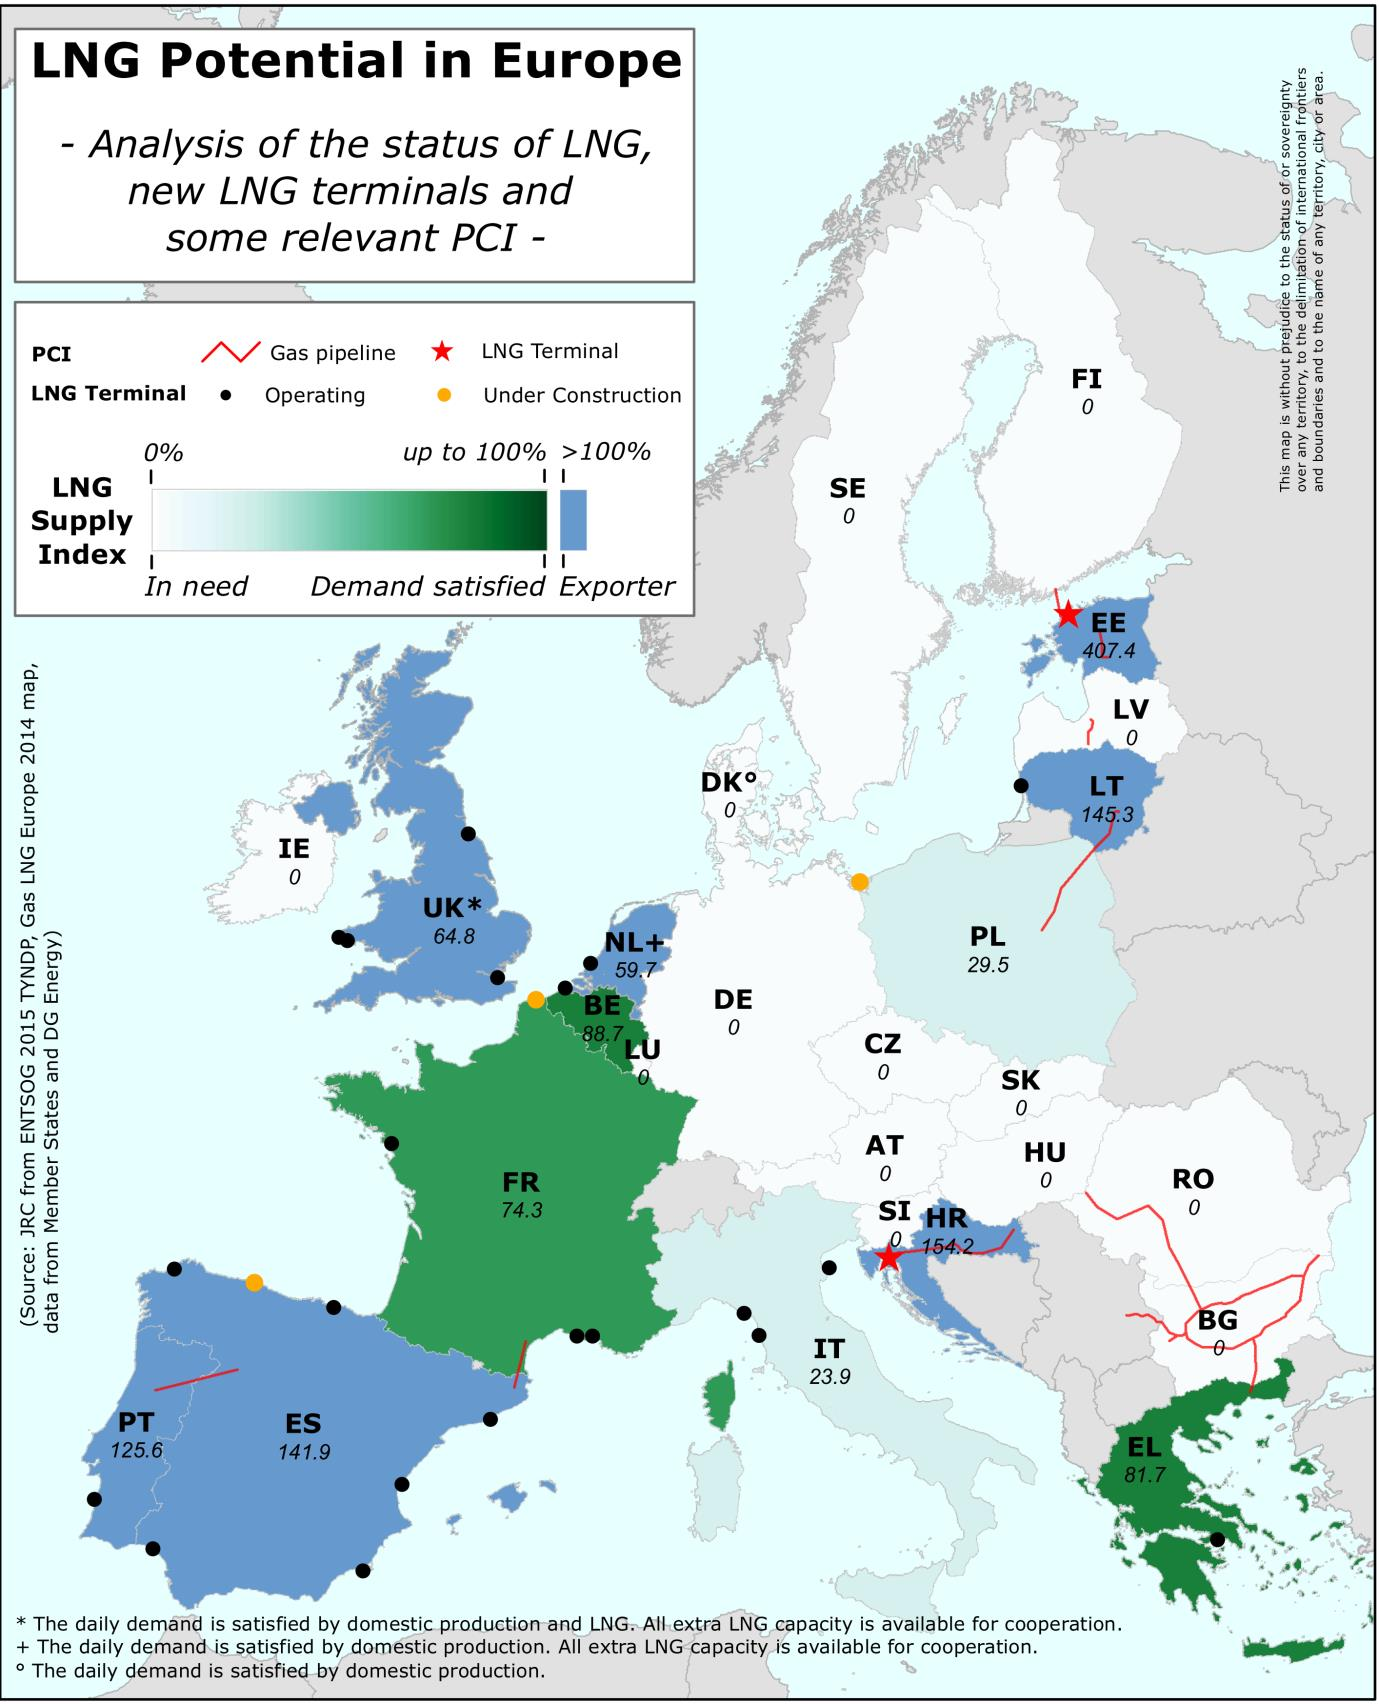 Eur lex 52016sc0023 en eur lex figure 7 potential penetration of lng after completion of relevant pcis including new lng terminals and interconnections without cooperation between gumiabroncs Choice Image